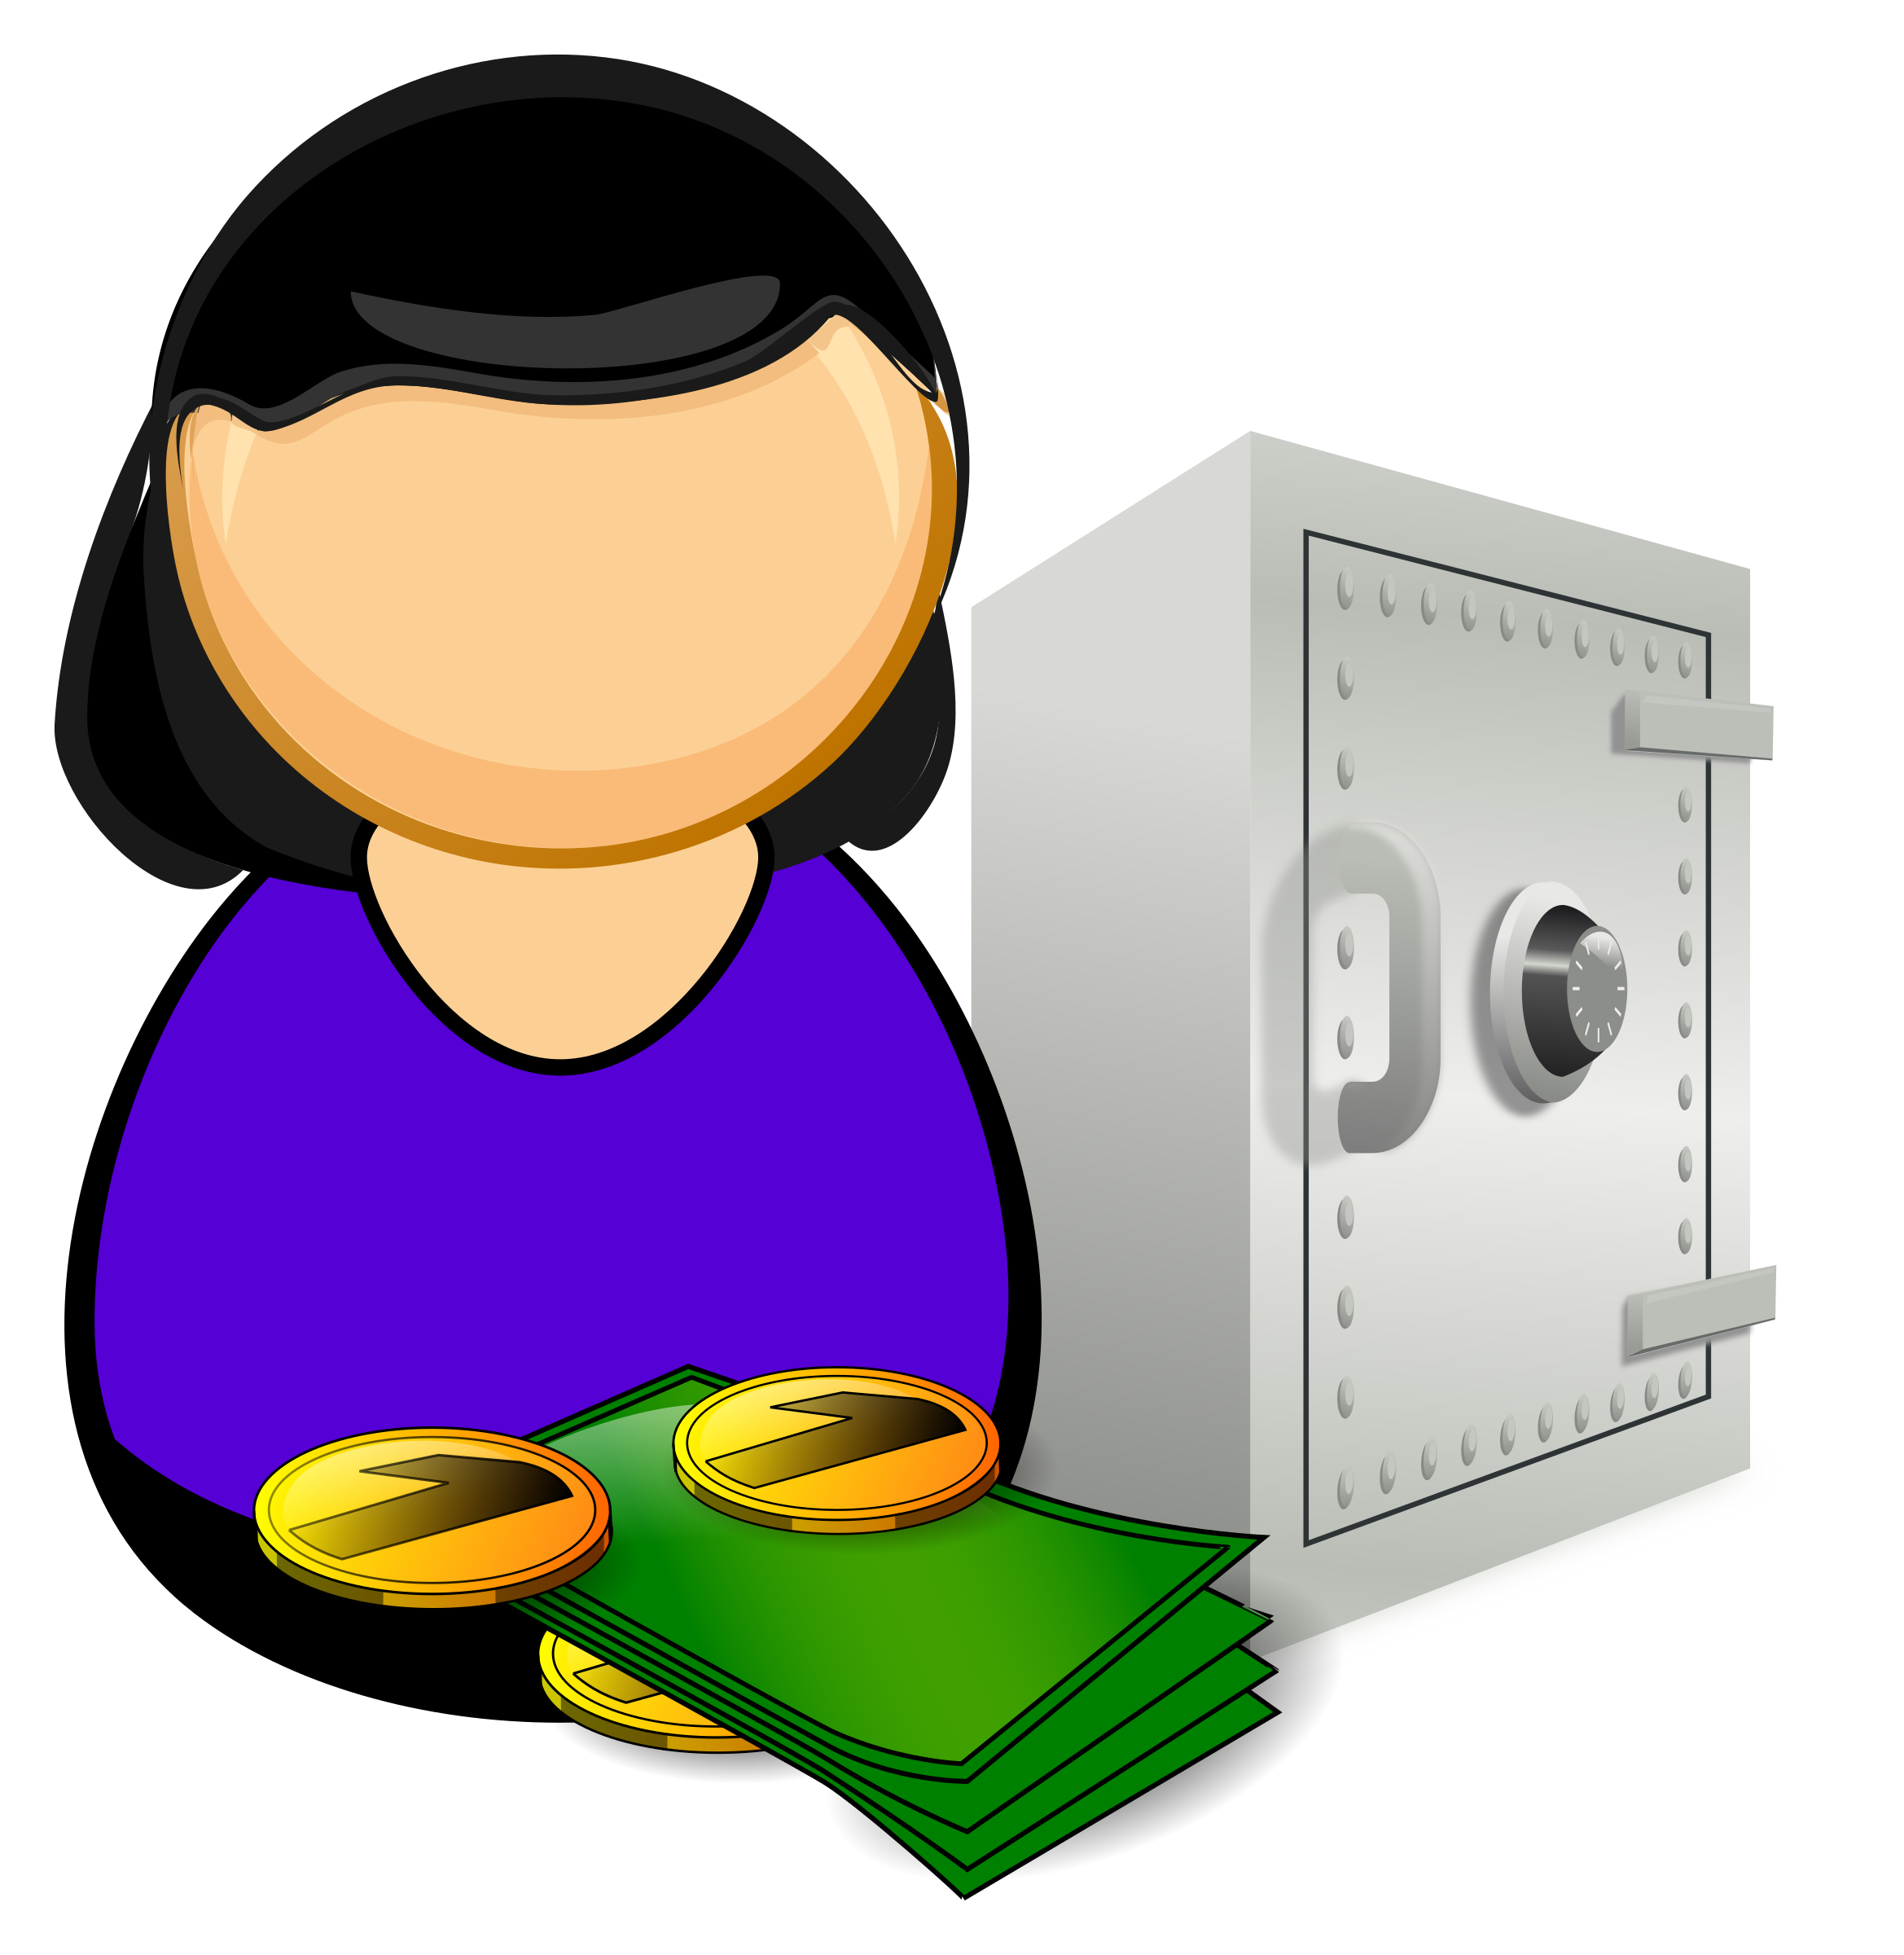 Accountant clipart bank accountant. Officer icons png free